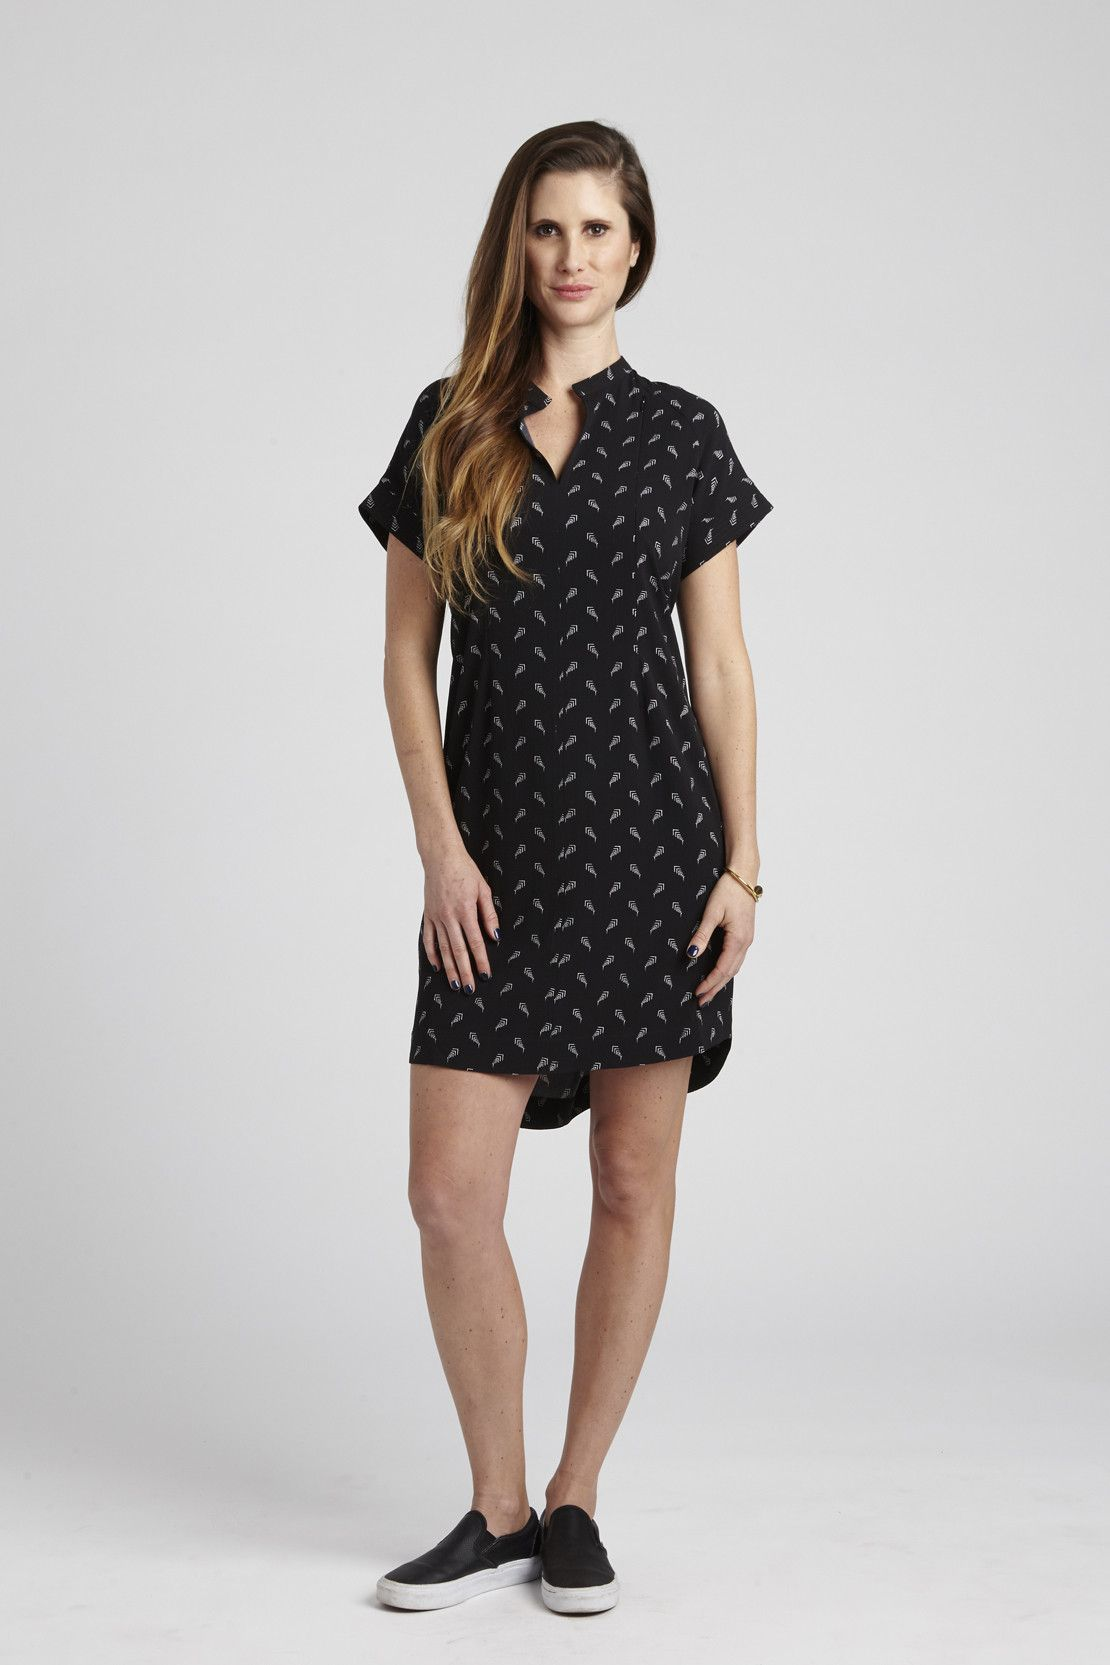 65ed581a13643 The Cybelle in Black Arrowhead is a Pocketed Short Sleeve Shirtdress (yes, a  dress!) She takes the basic design cues from Carrie, our Pocketed Short  Sleeve ...